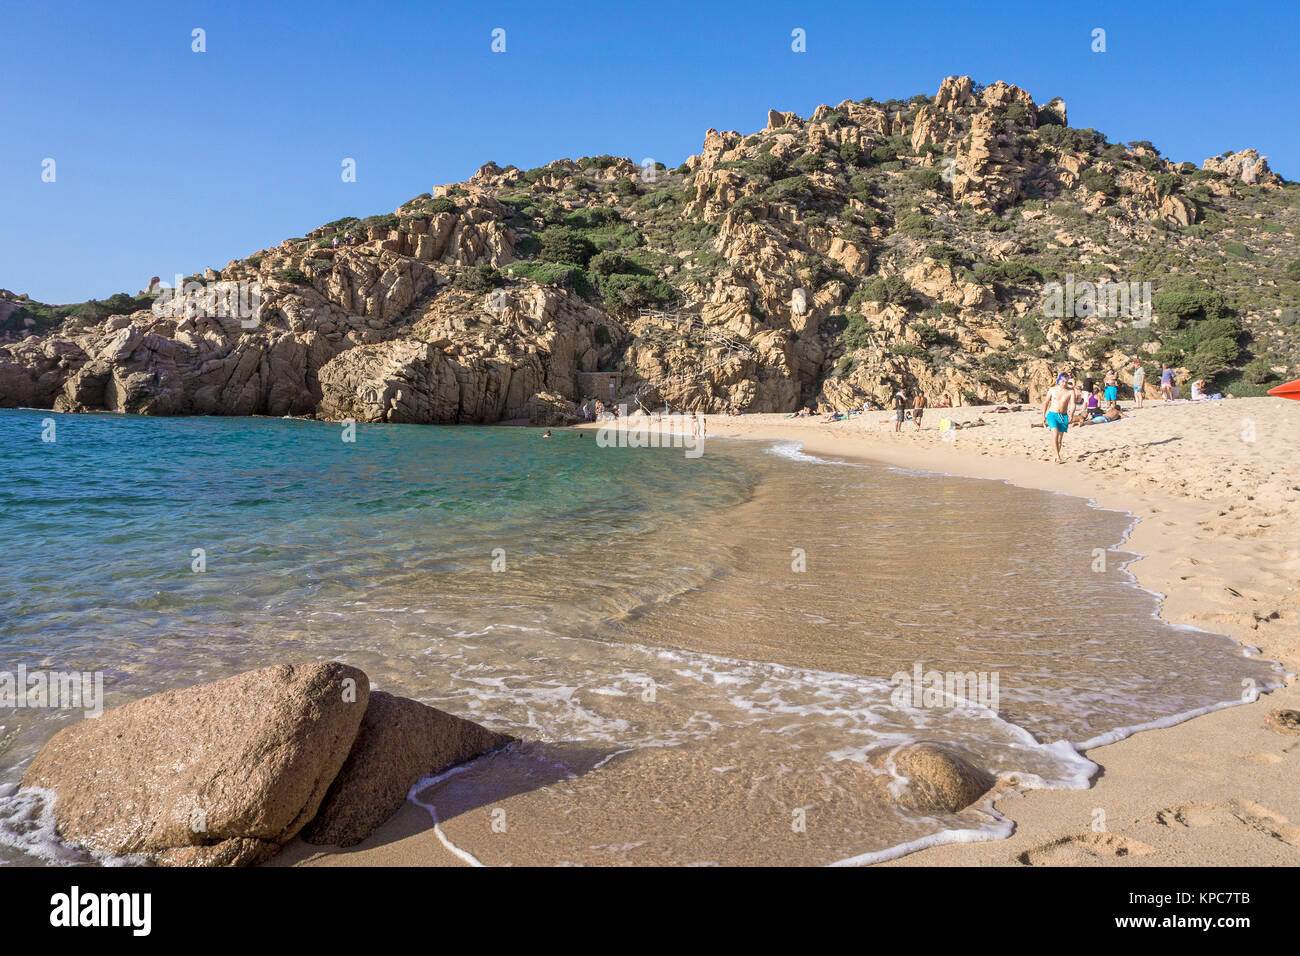 The beach Li Cossi at Costa Paradiso, one of the most beautifully   beach on Sardinia, Italy, Mediterranean  sea, - Stock Image